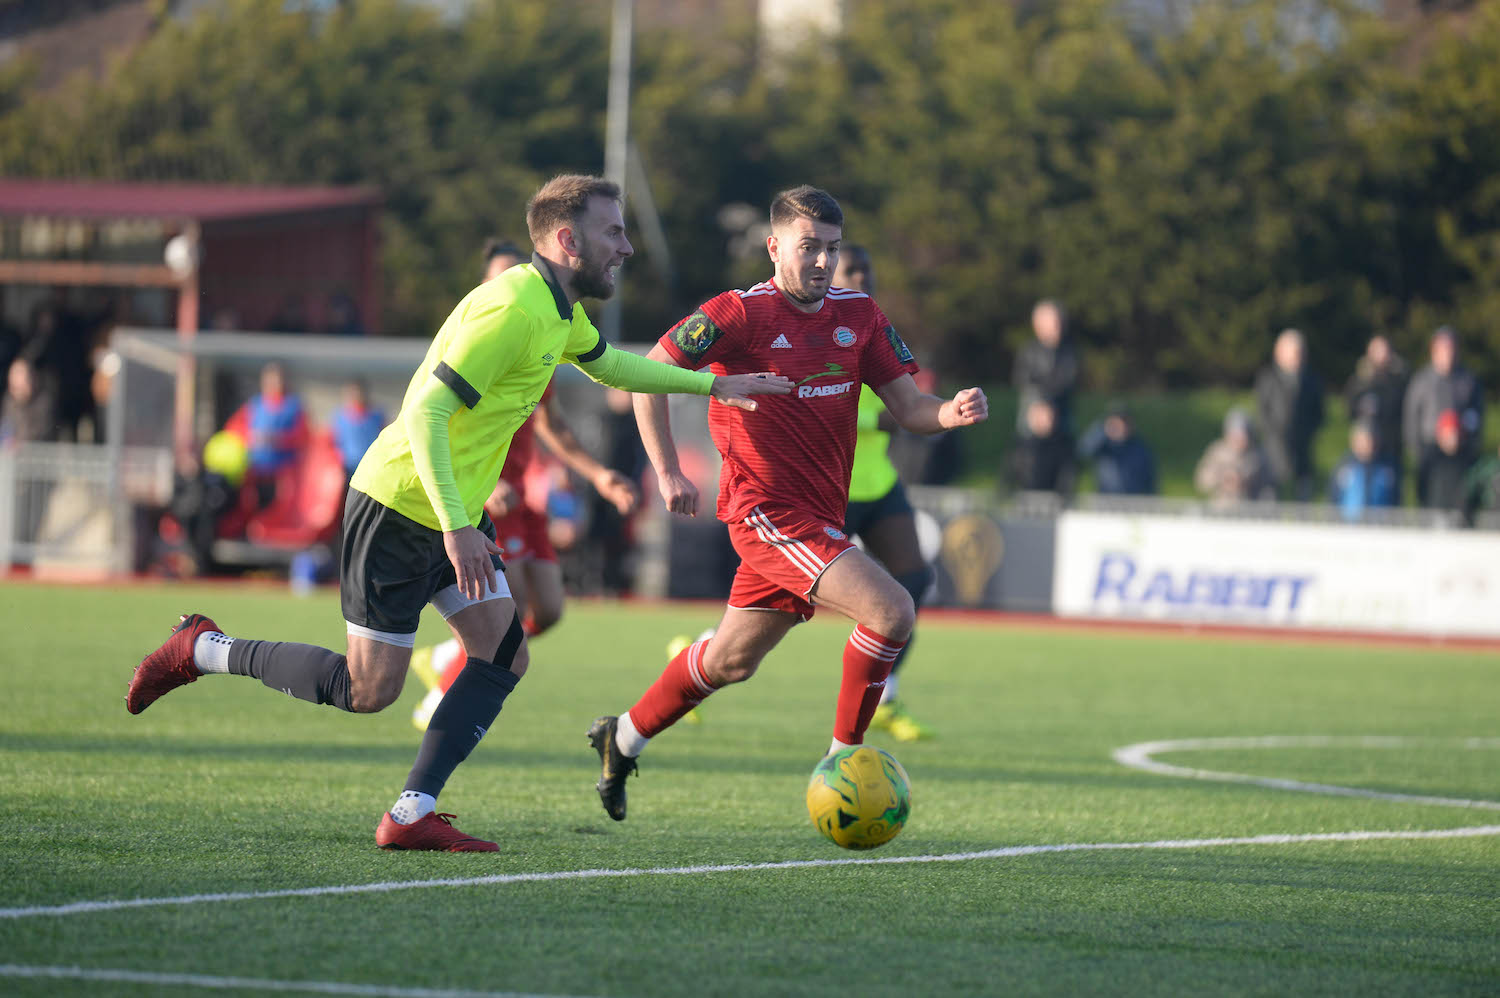 Read the full article - Potters Bar Town vs Worthing, 27/10/2020.